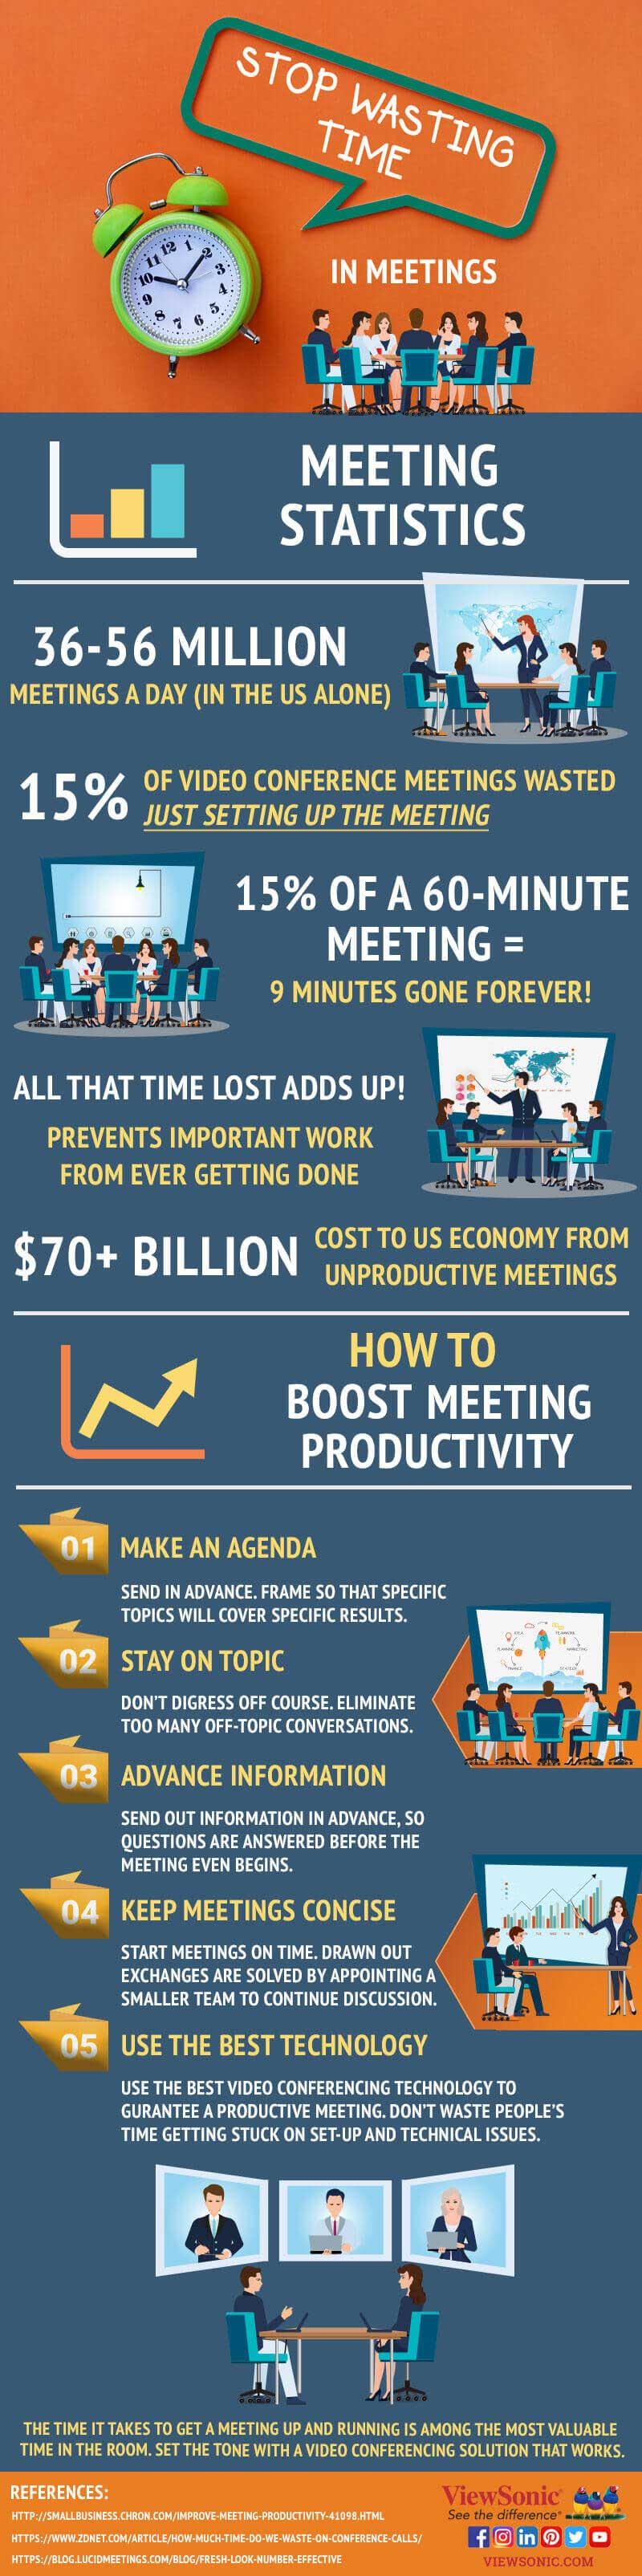 Wasting-Time-in-Meetings-What-To-Do